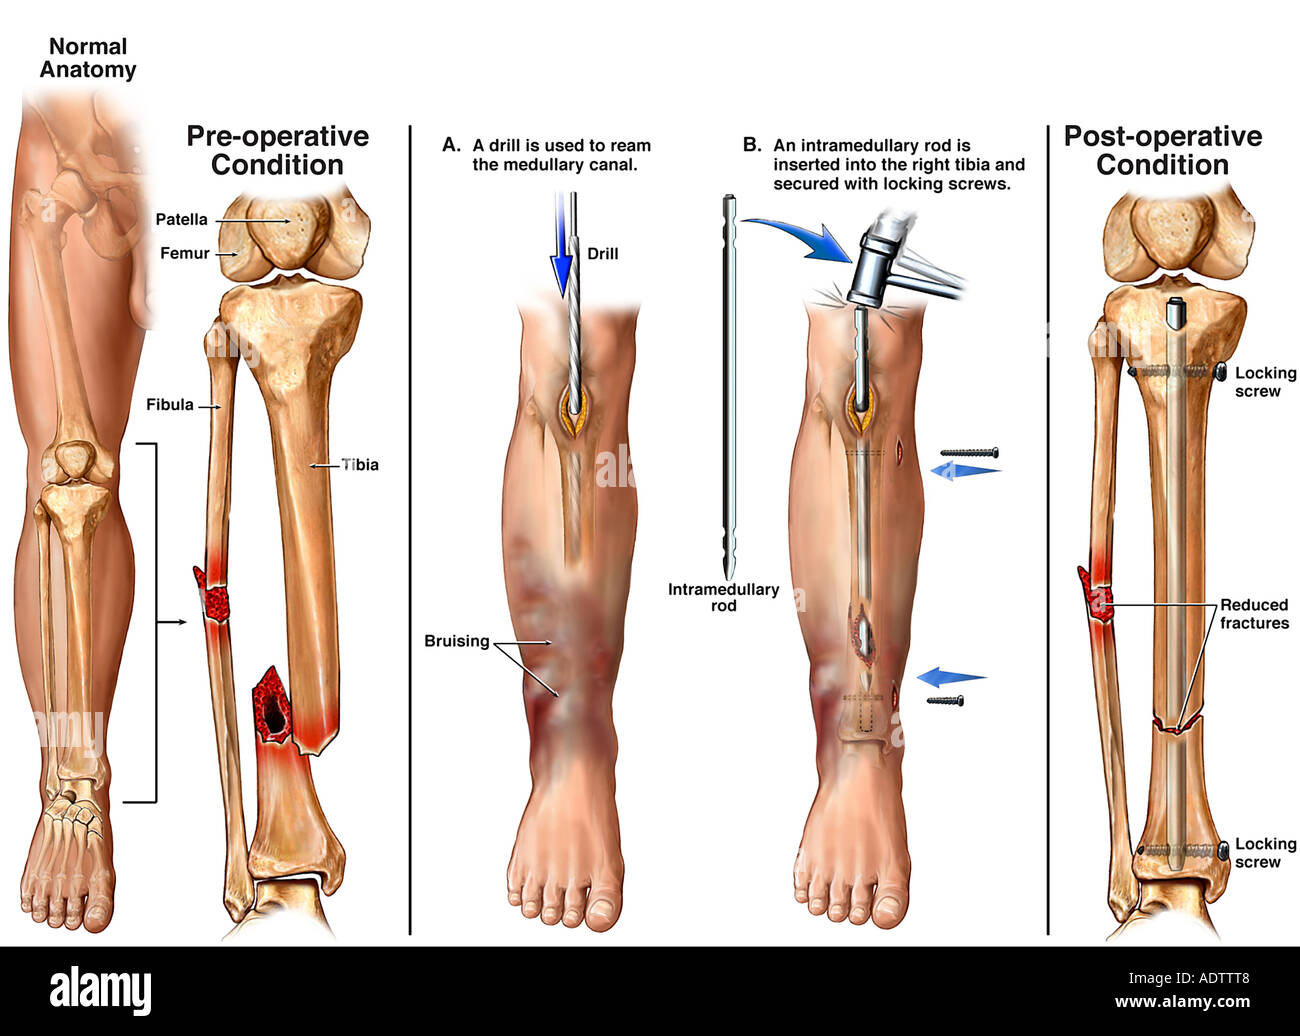 Fine Anatomy Of Tibia And Fibula Sketch - Anatomy Ideas - yunoki.info